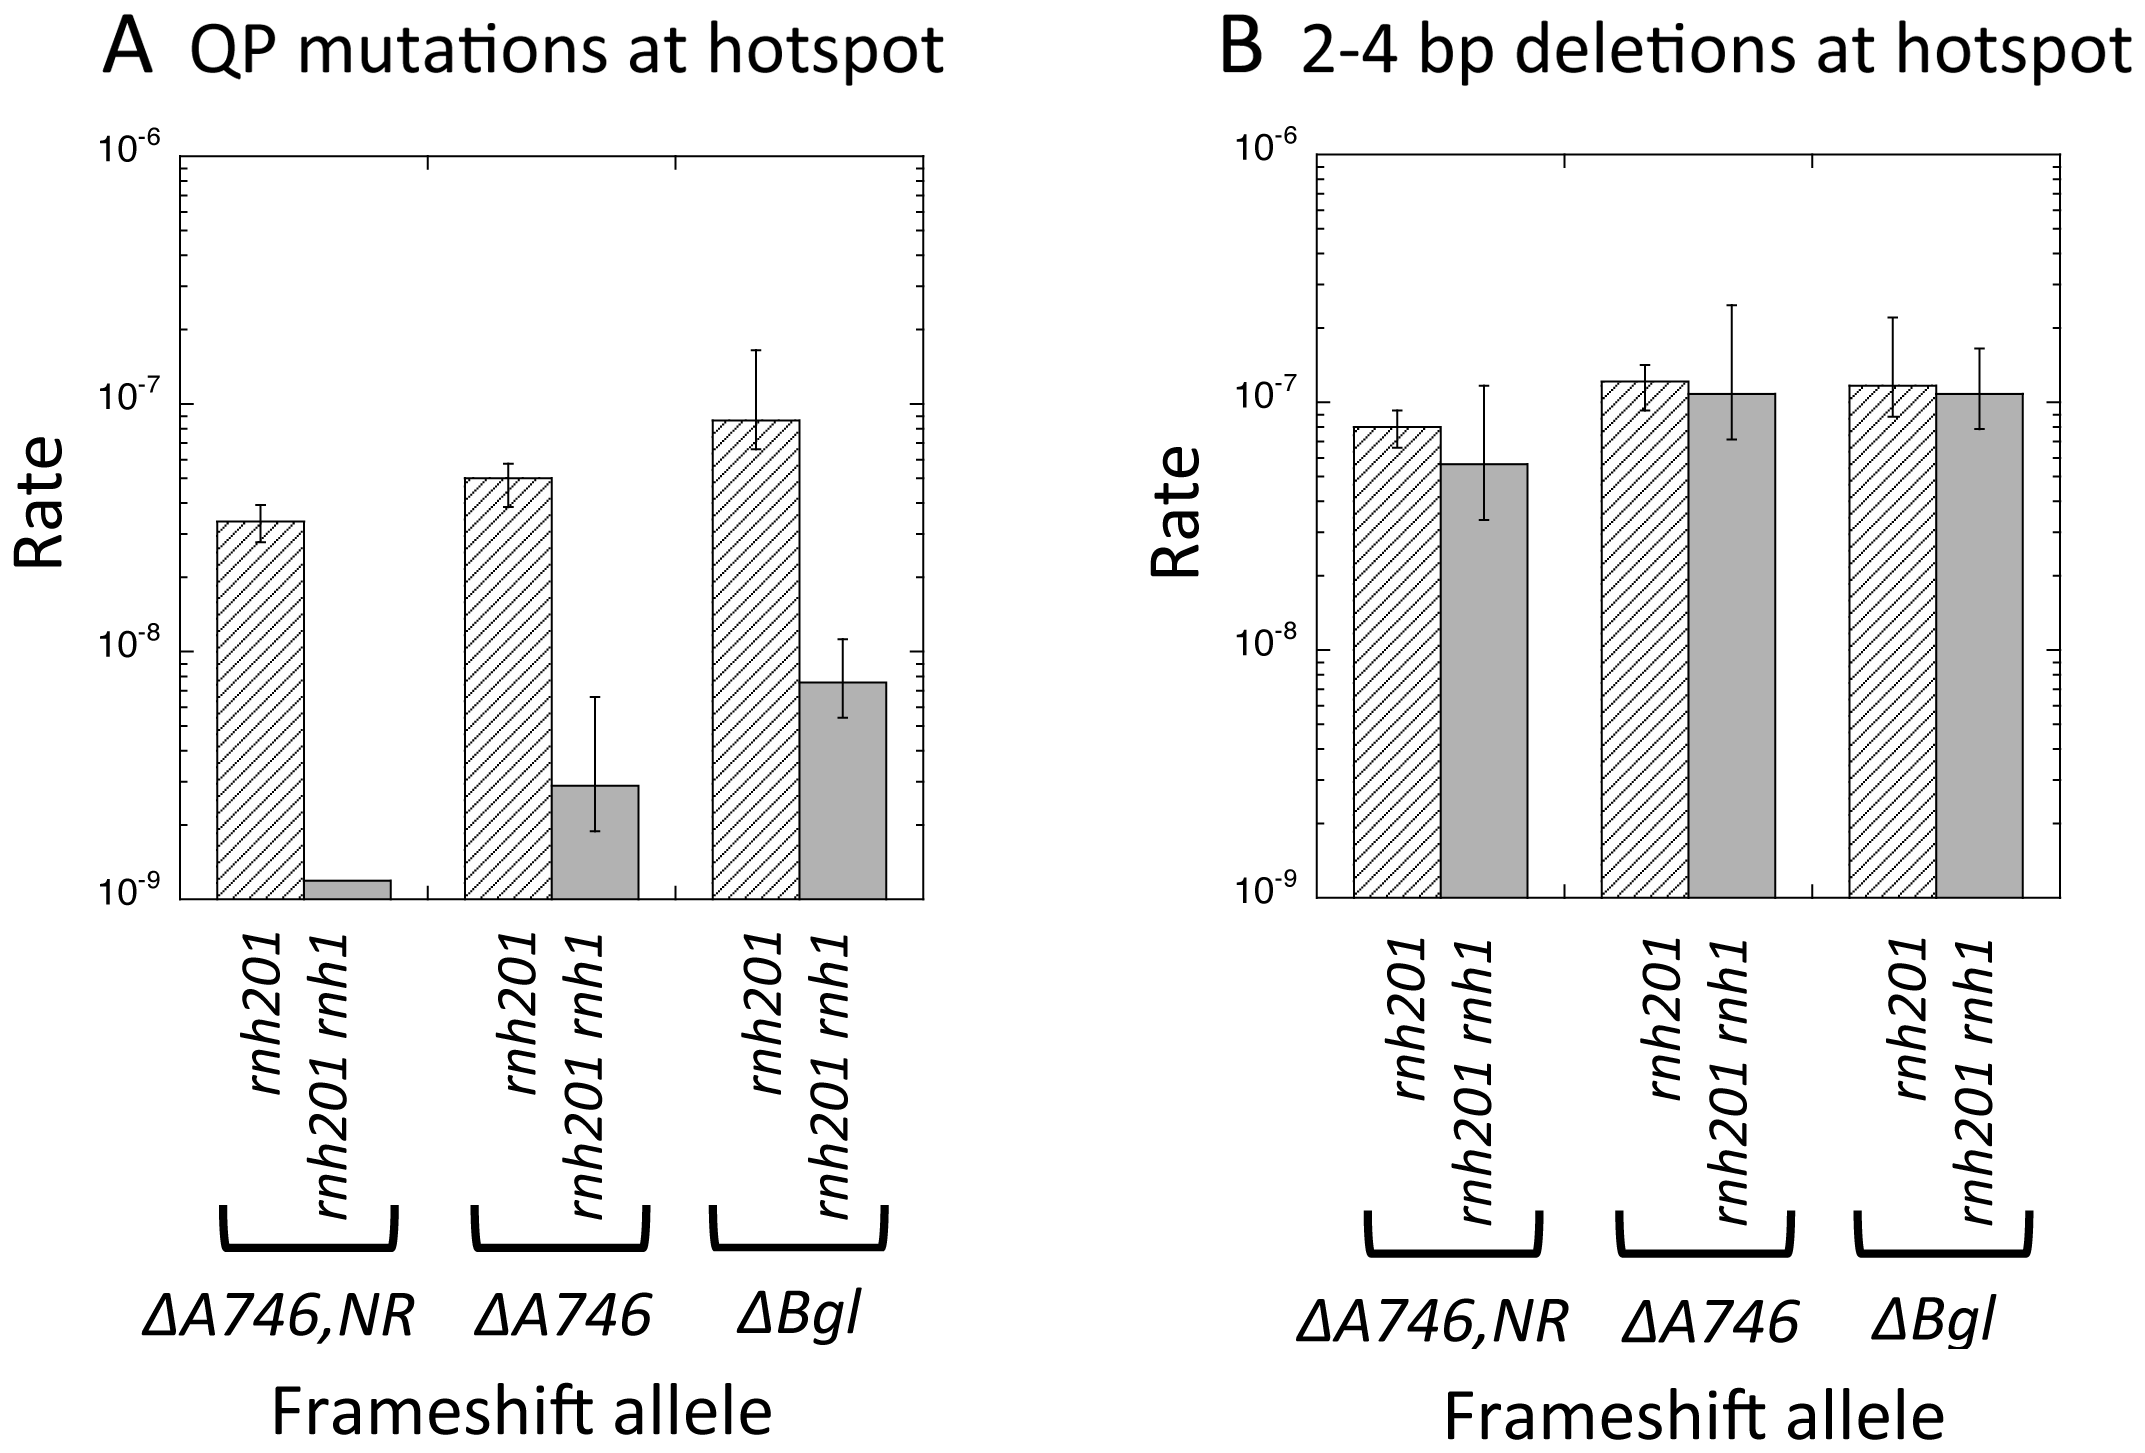 Rates of QP mutations and tandem-repeat deletions at hotspots in RNaseH1-defective strains.